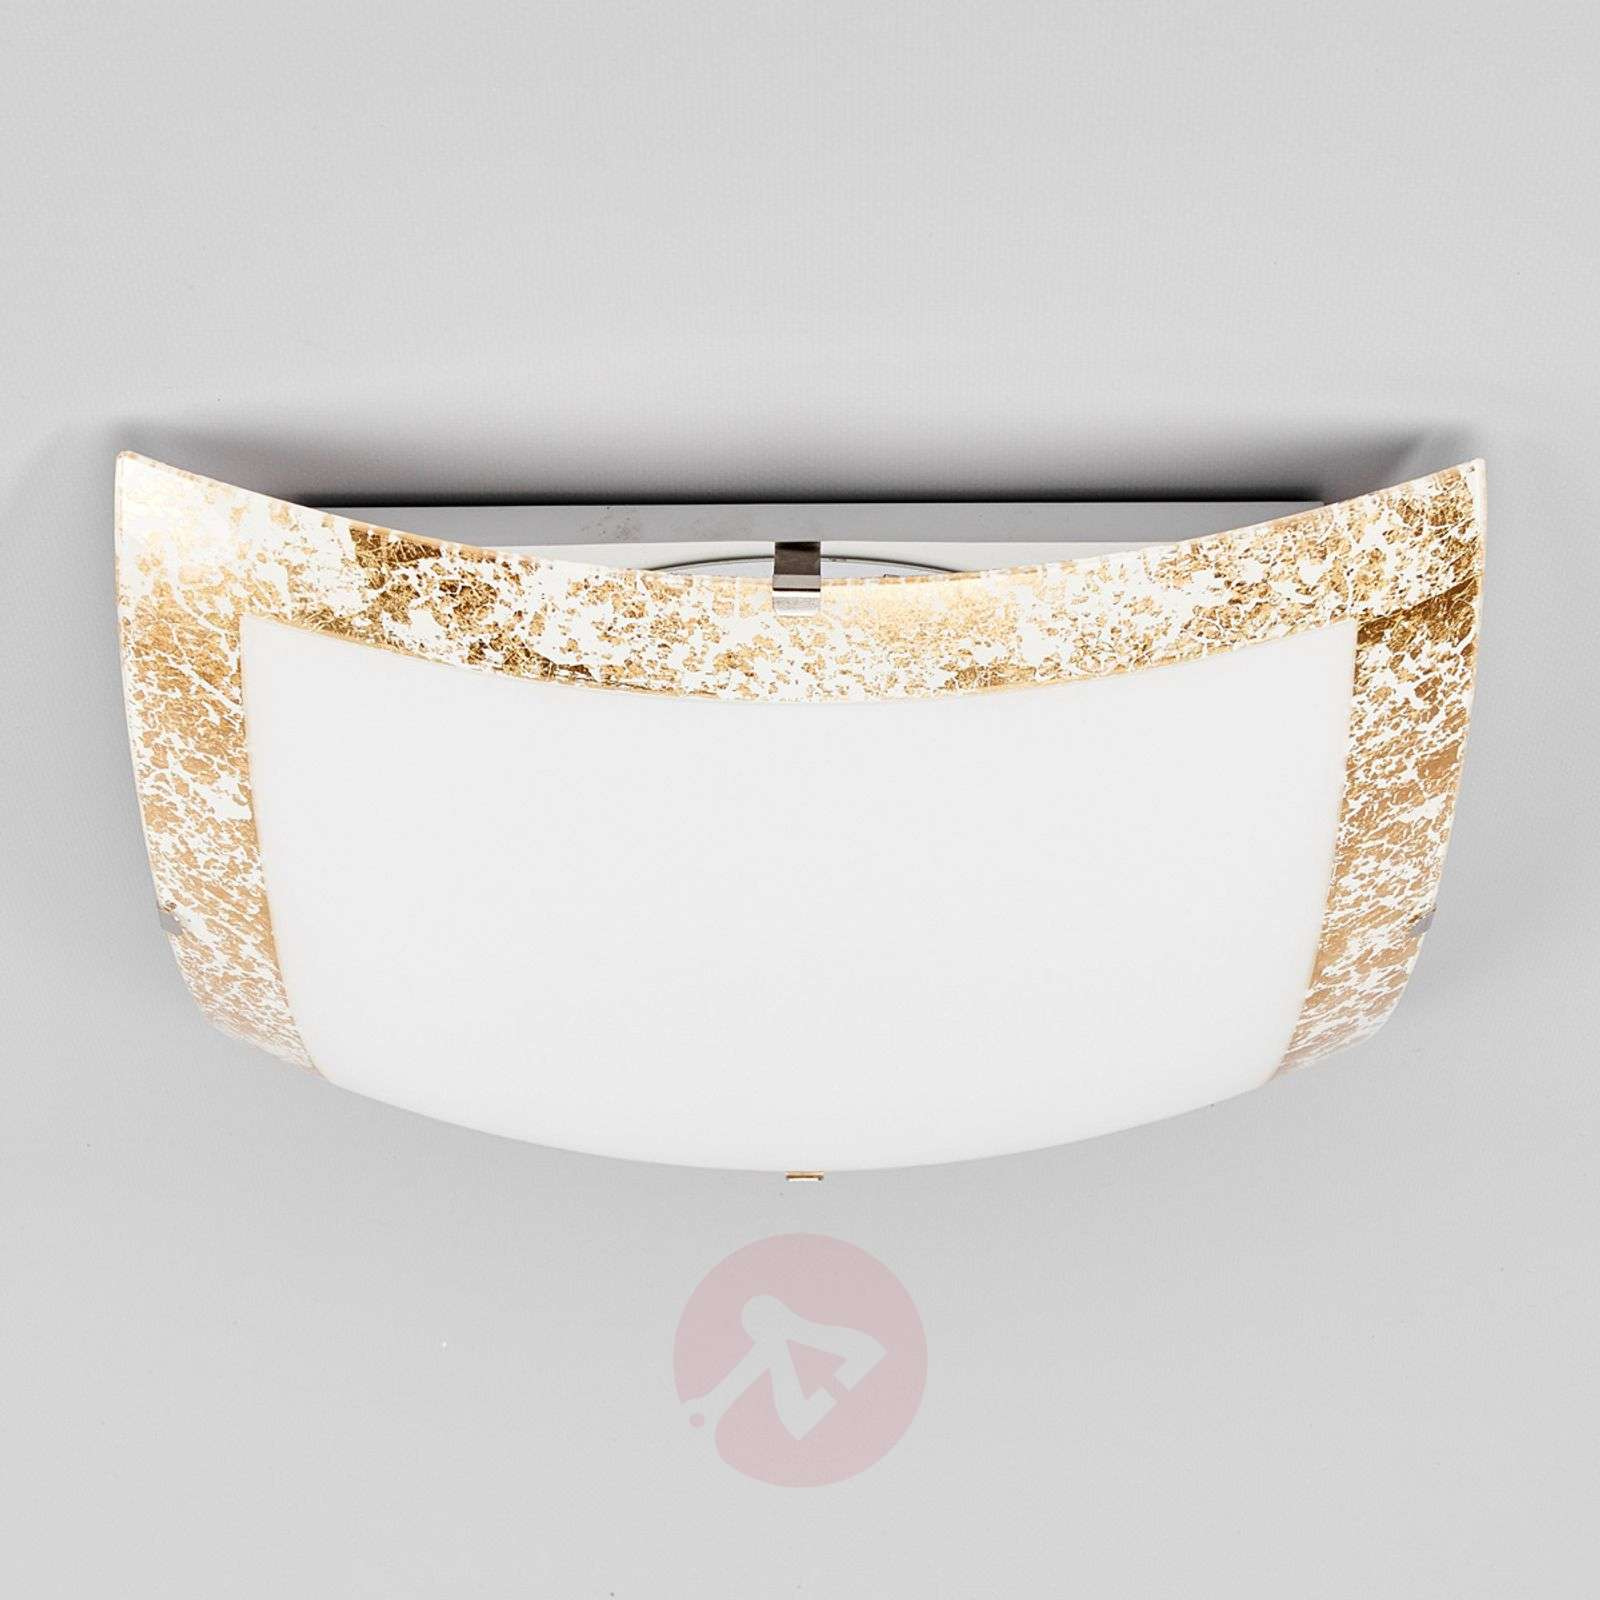 Mirella LED ceiling light with a gold border-9625035-01